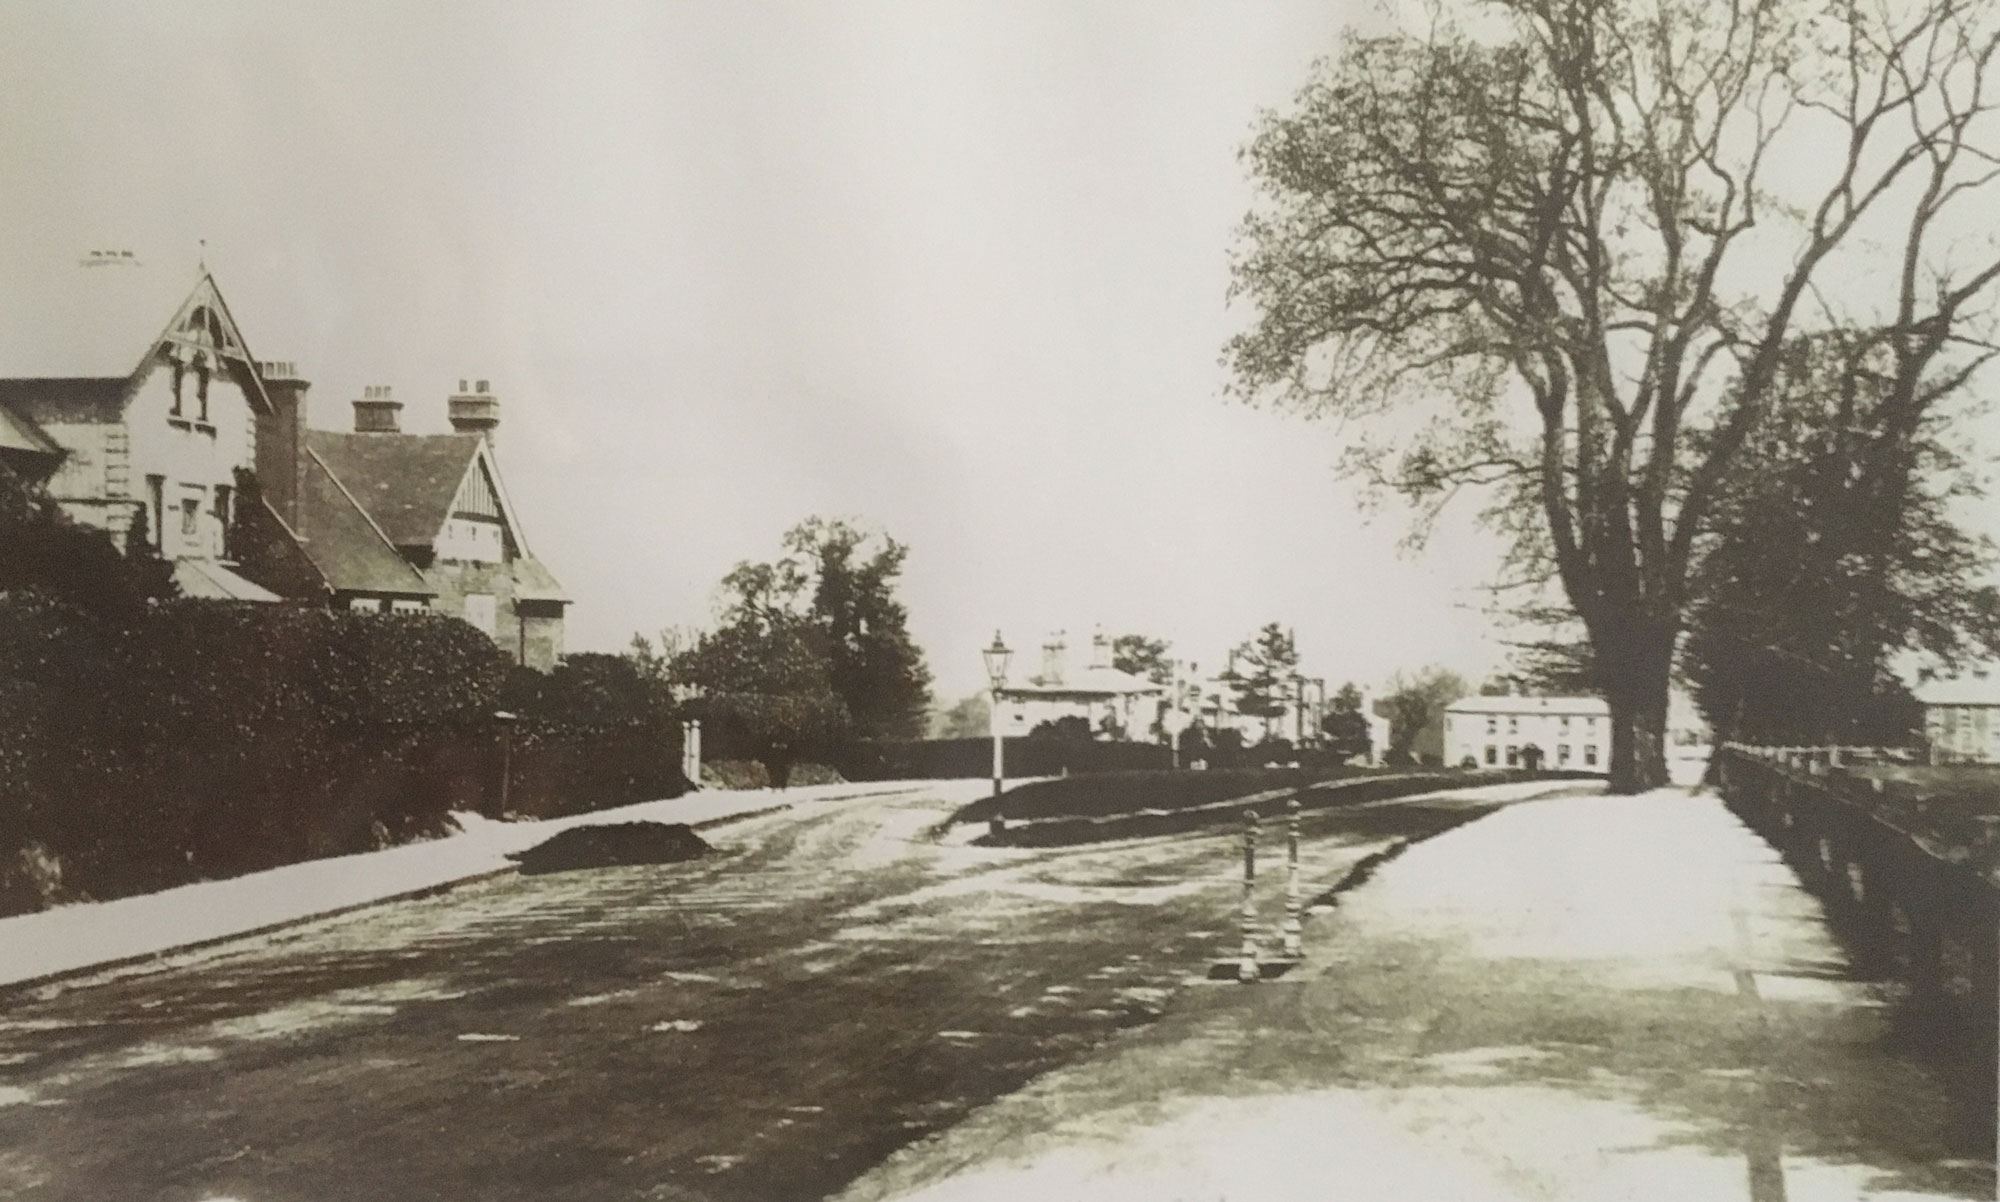 Uplands House in 1900